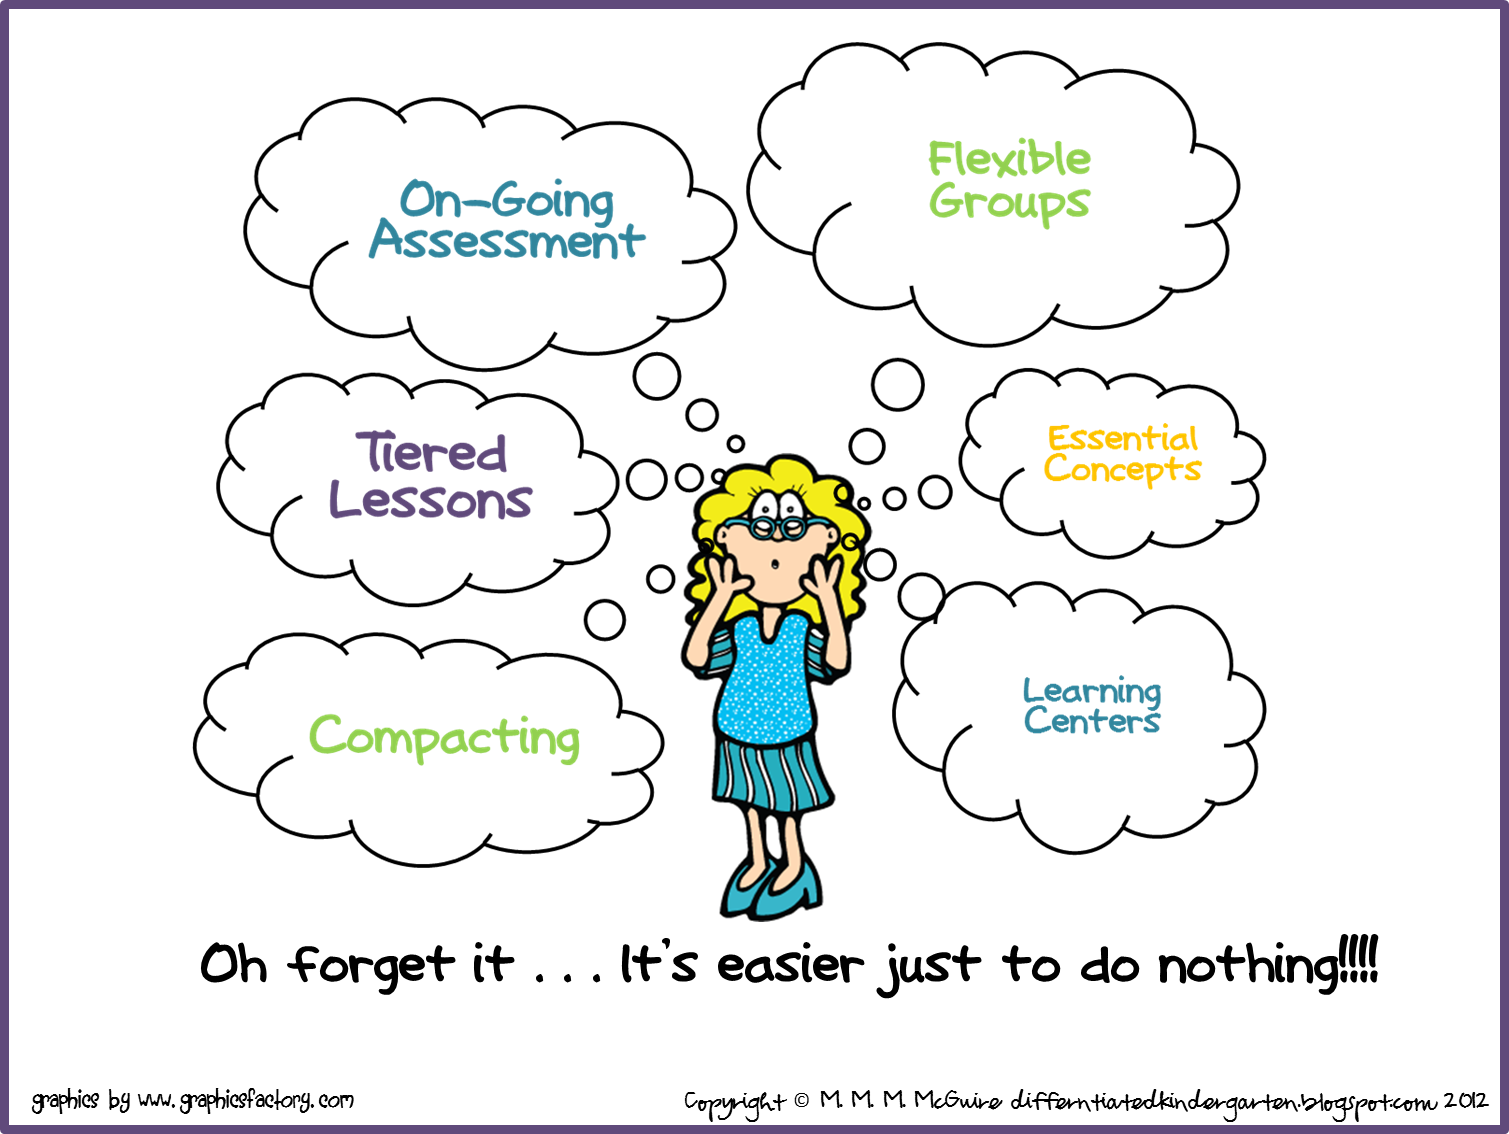 differentiated instruction meeting individual needs Individualized instruction vs differentiated instruction by ginny osewalt every classroom has a range of students with different kinds of needs differentiated instruction starts with groups of children the school can meet their individual needs and provide accommodations just for them.